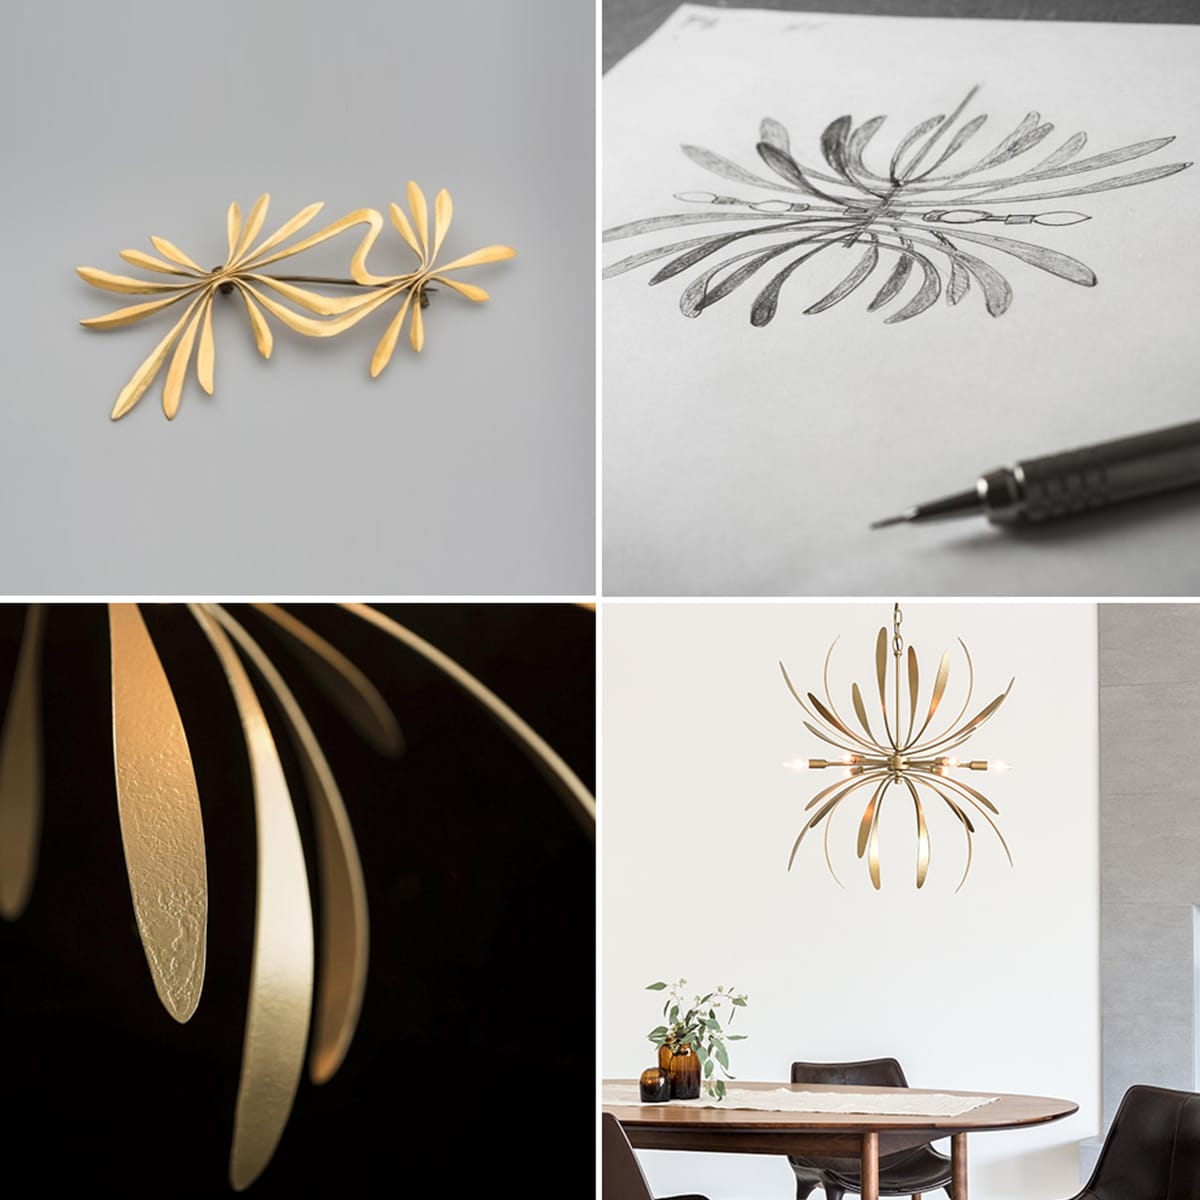 The Dahlia, from inspiration to conception to final design. Designer Paul Marr-Hilliard was inspired by a piece of forged jewelry created by Harry Bertoia.